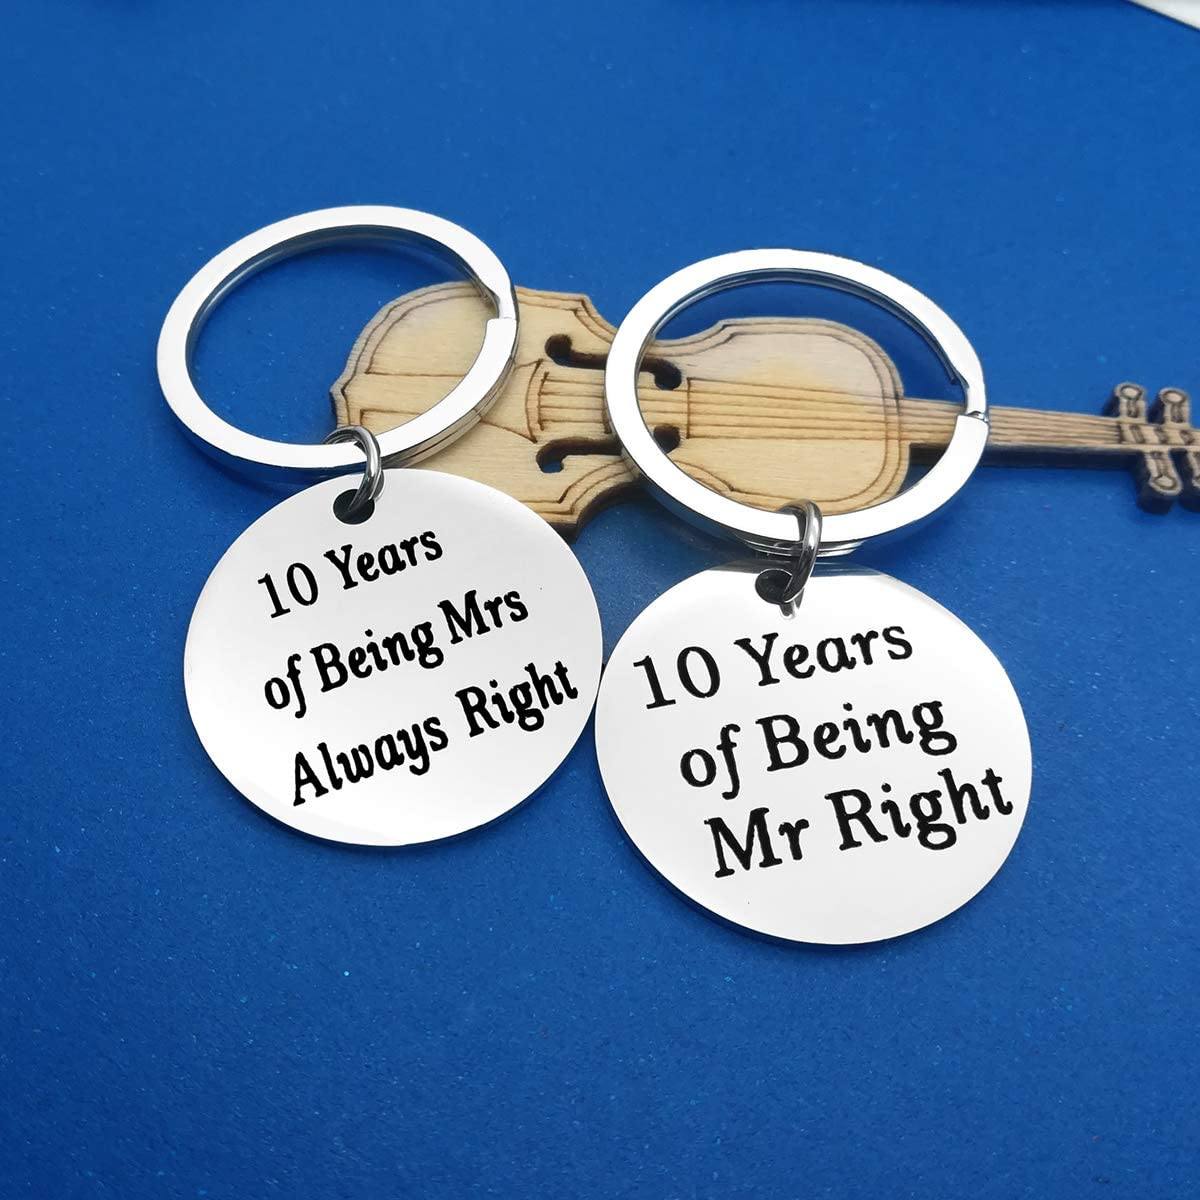 10 Years Anniversary Wedding Gifts Happy Anniversary 10th Keyring Set Matching Keychain Gift for Couple Mom Dad Keyring Anniversary Keyring for Husband Wife Valentine Birthday Gifts